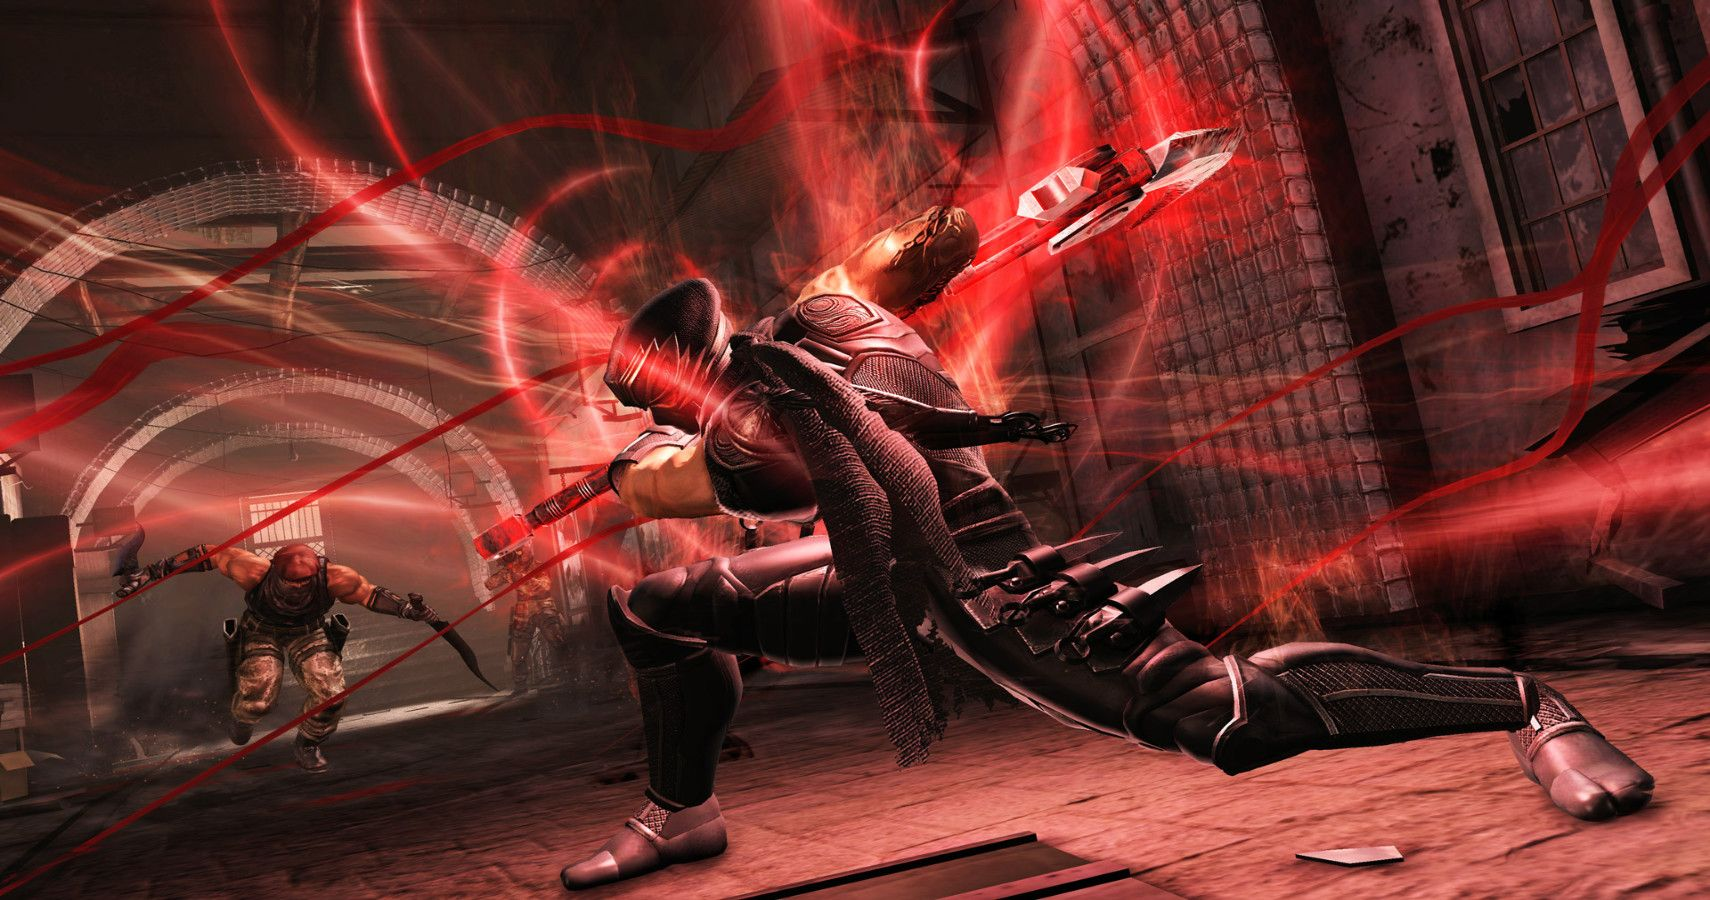 Ninja Gaiden Master Collection Appears To Be Using The Vita Version For One Game